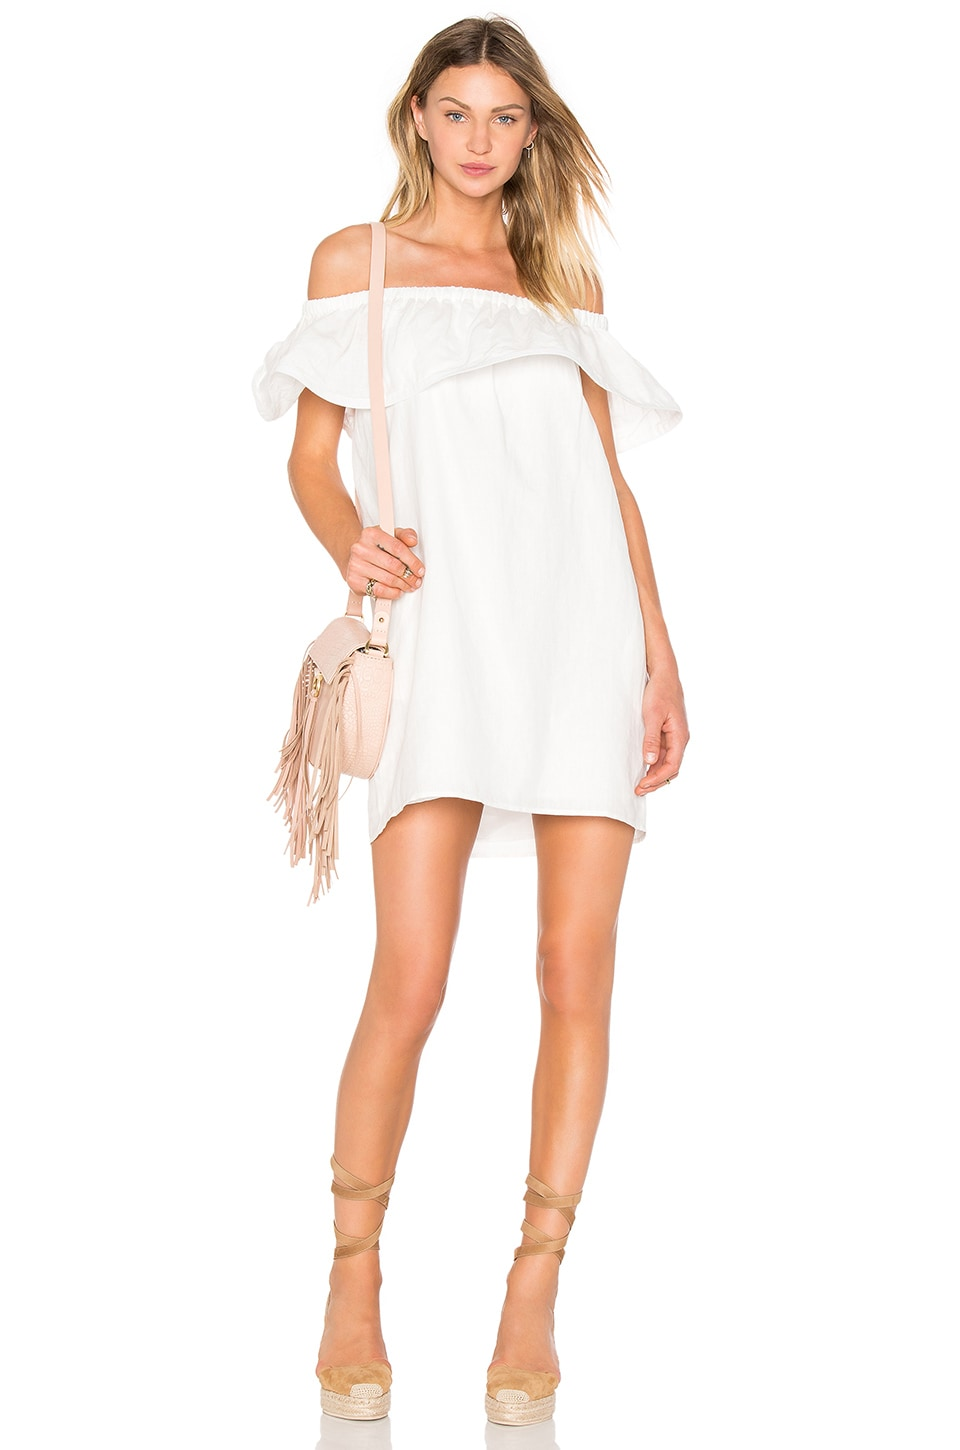 Concorde Ruffle Dress